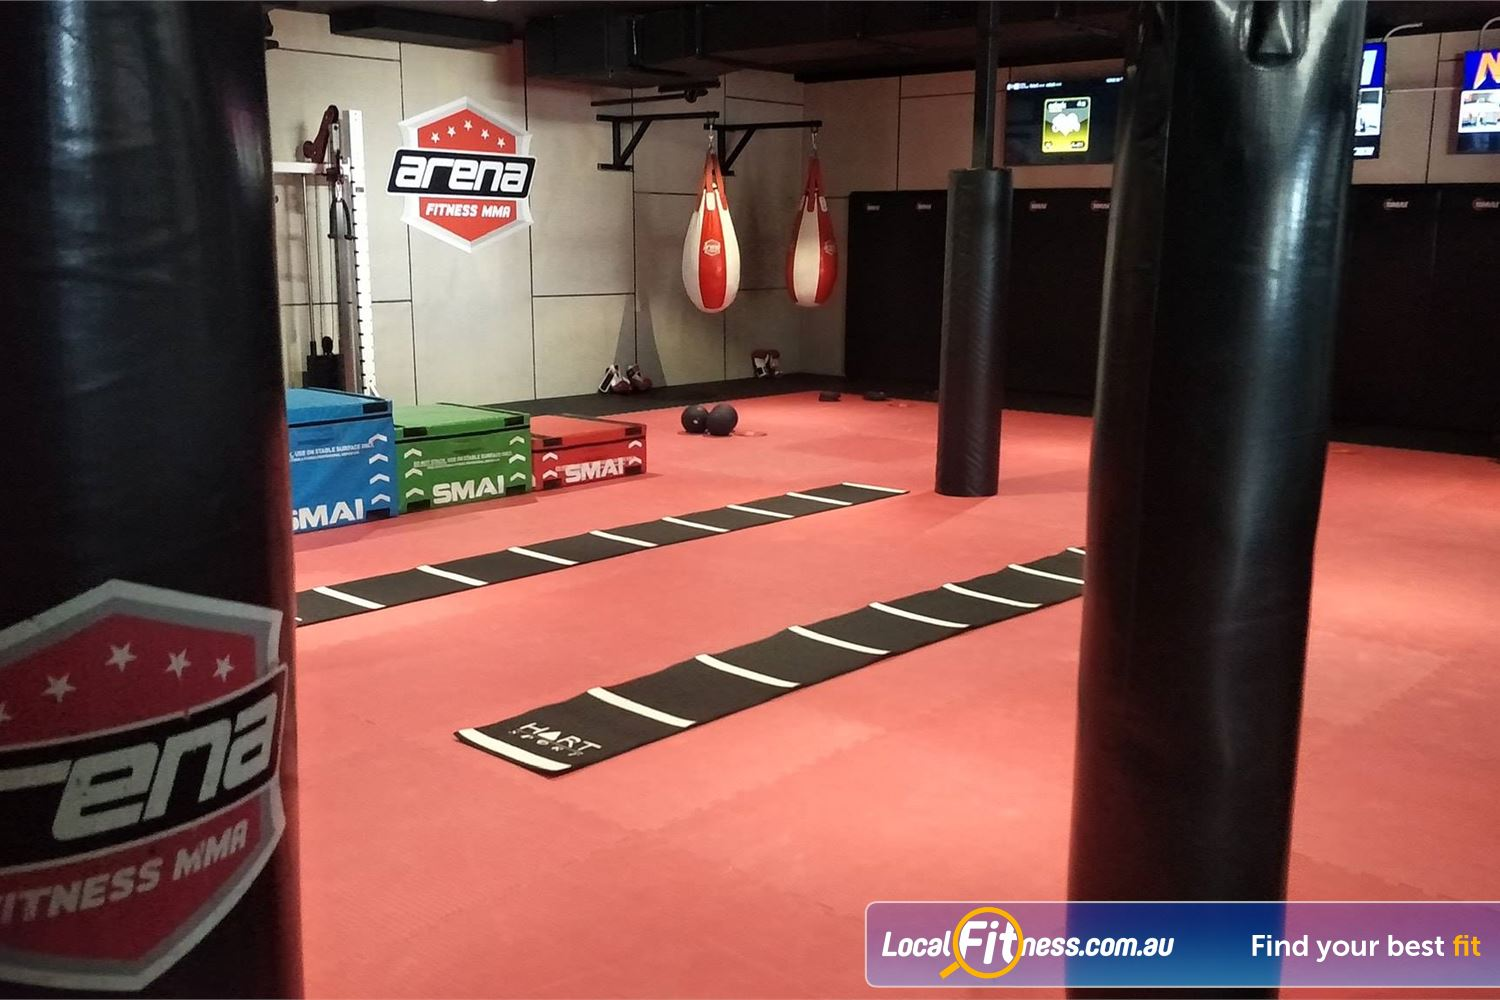 Goodlife Health Clubs Near Gumdale On-site Carindale Arena Fitness MMA - classes inspired by MMA and Boxing.